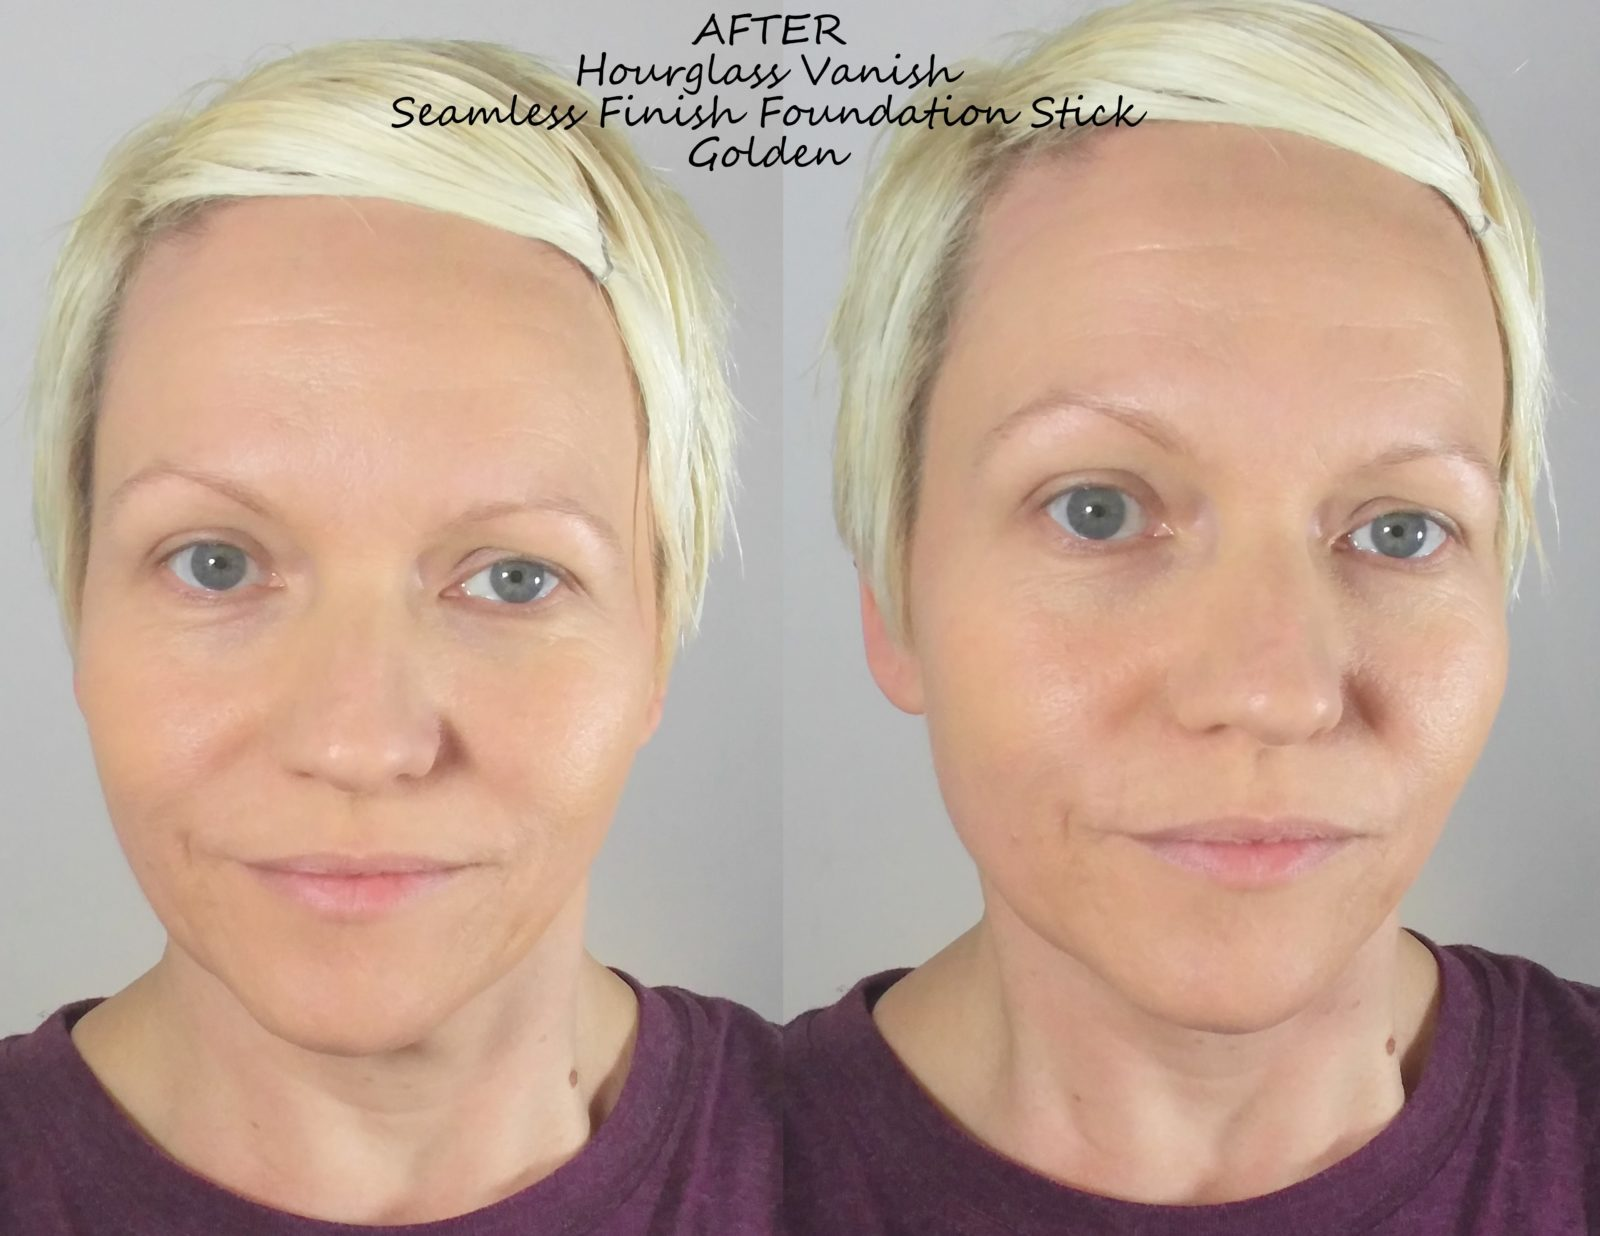 Hourglass Vanish Stick Foundation Before After Photos